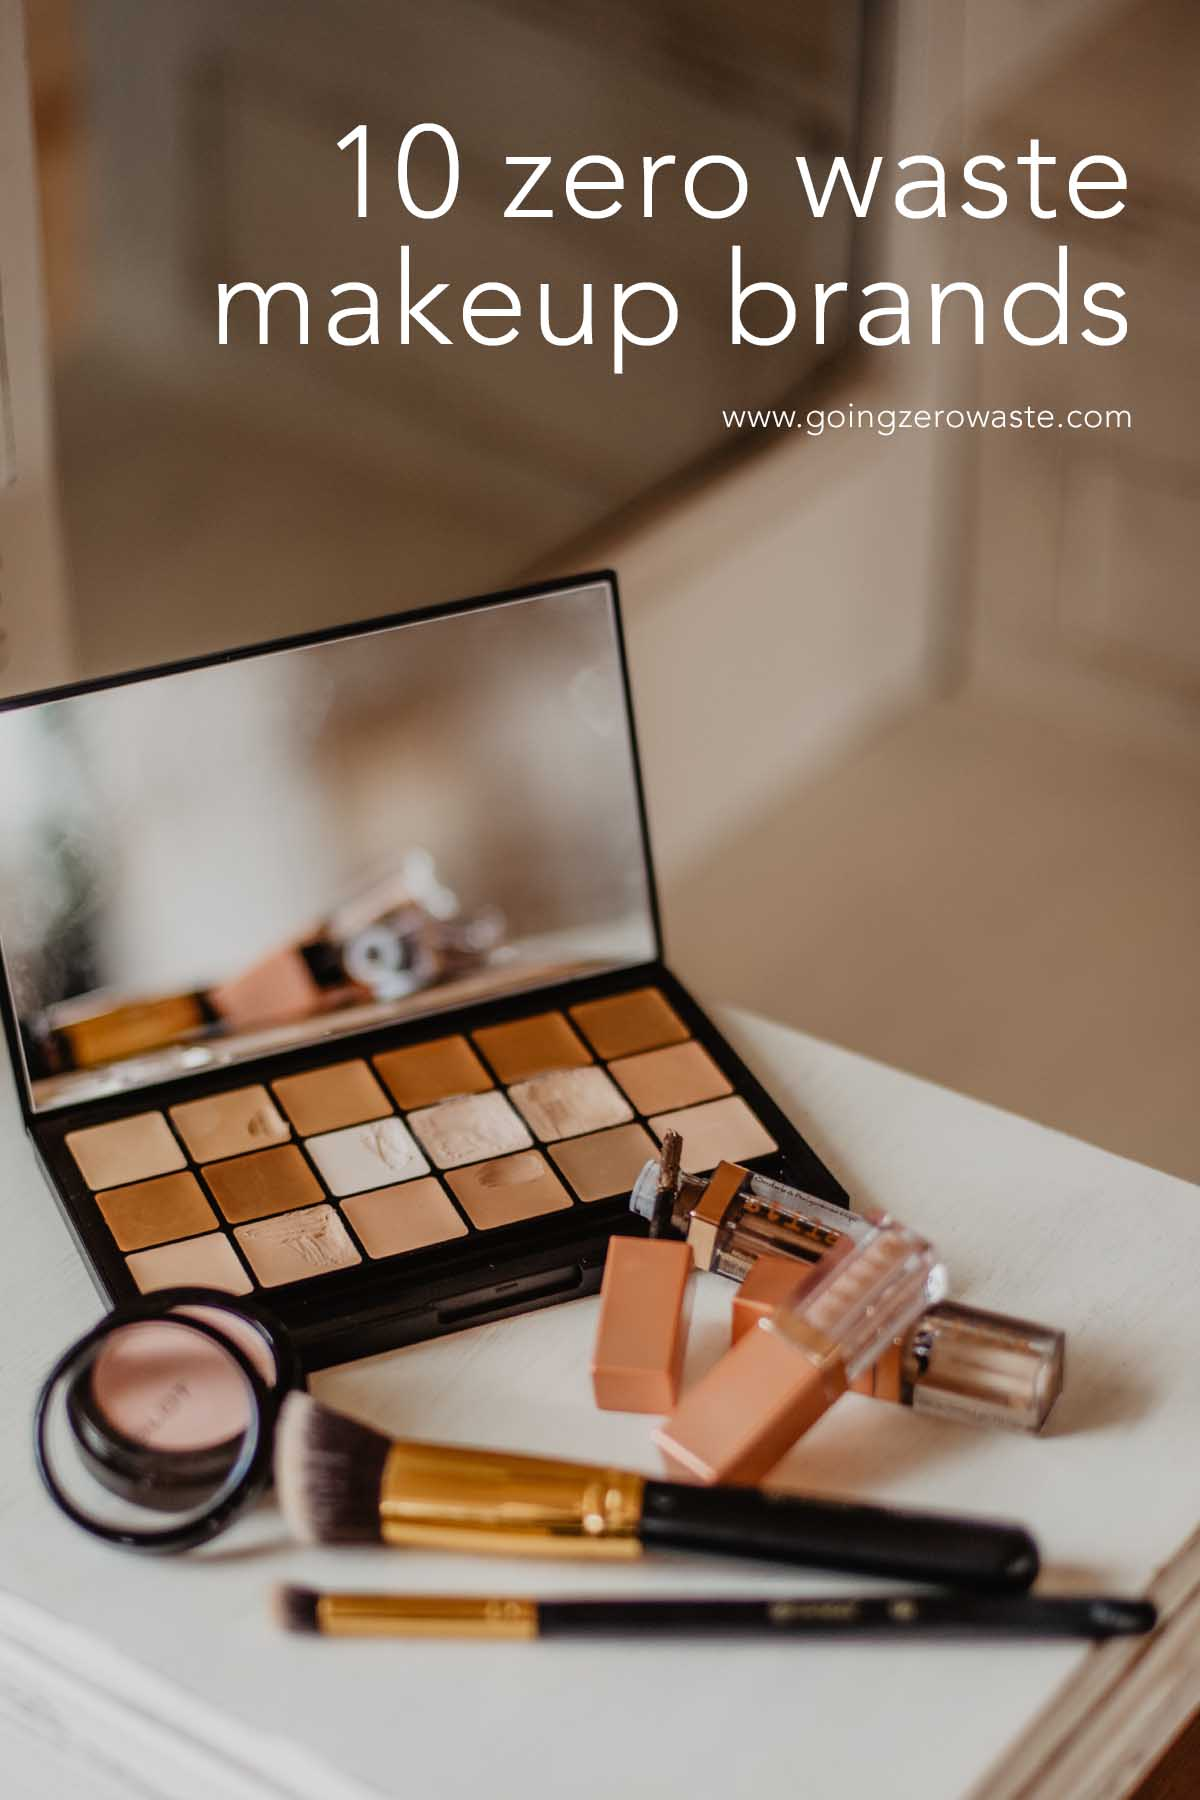 10 Zero Waste Makeup Brands - Going Zero Waste